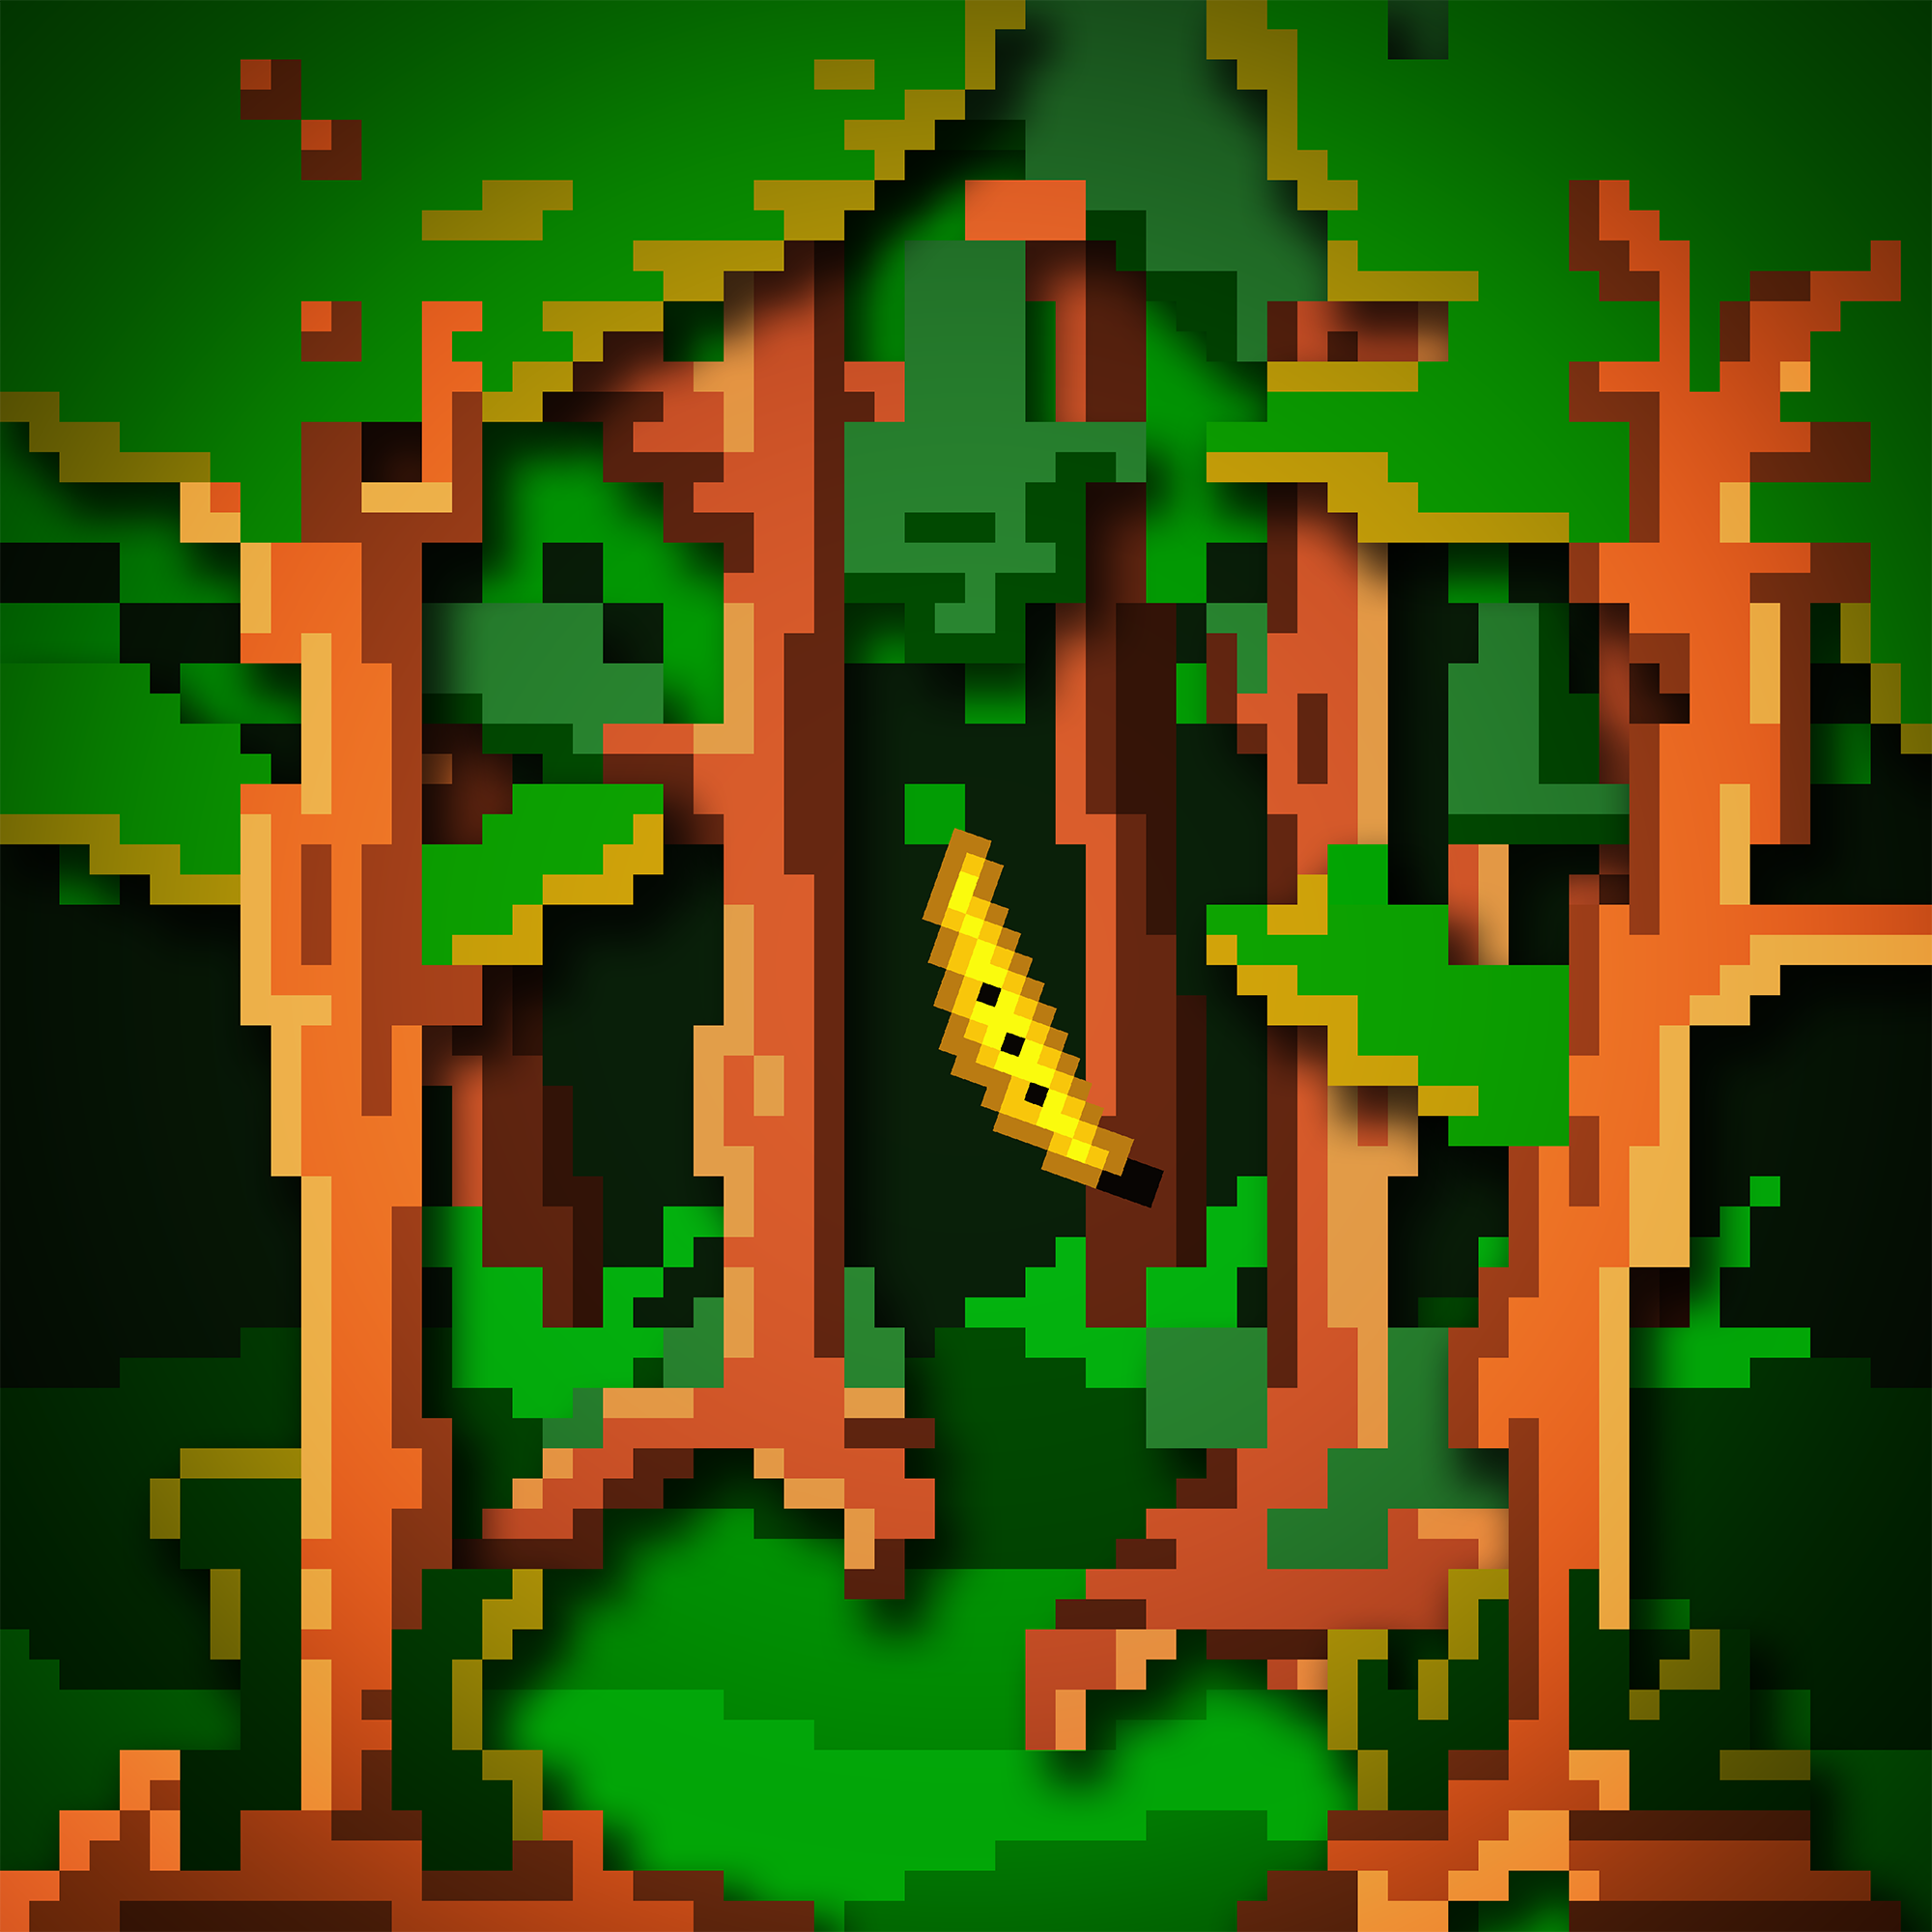 bananas_forest.png